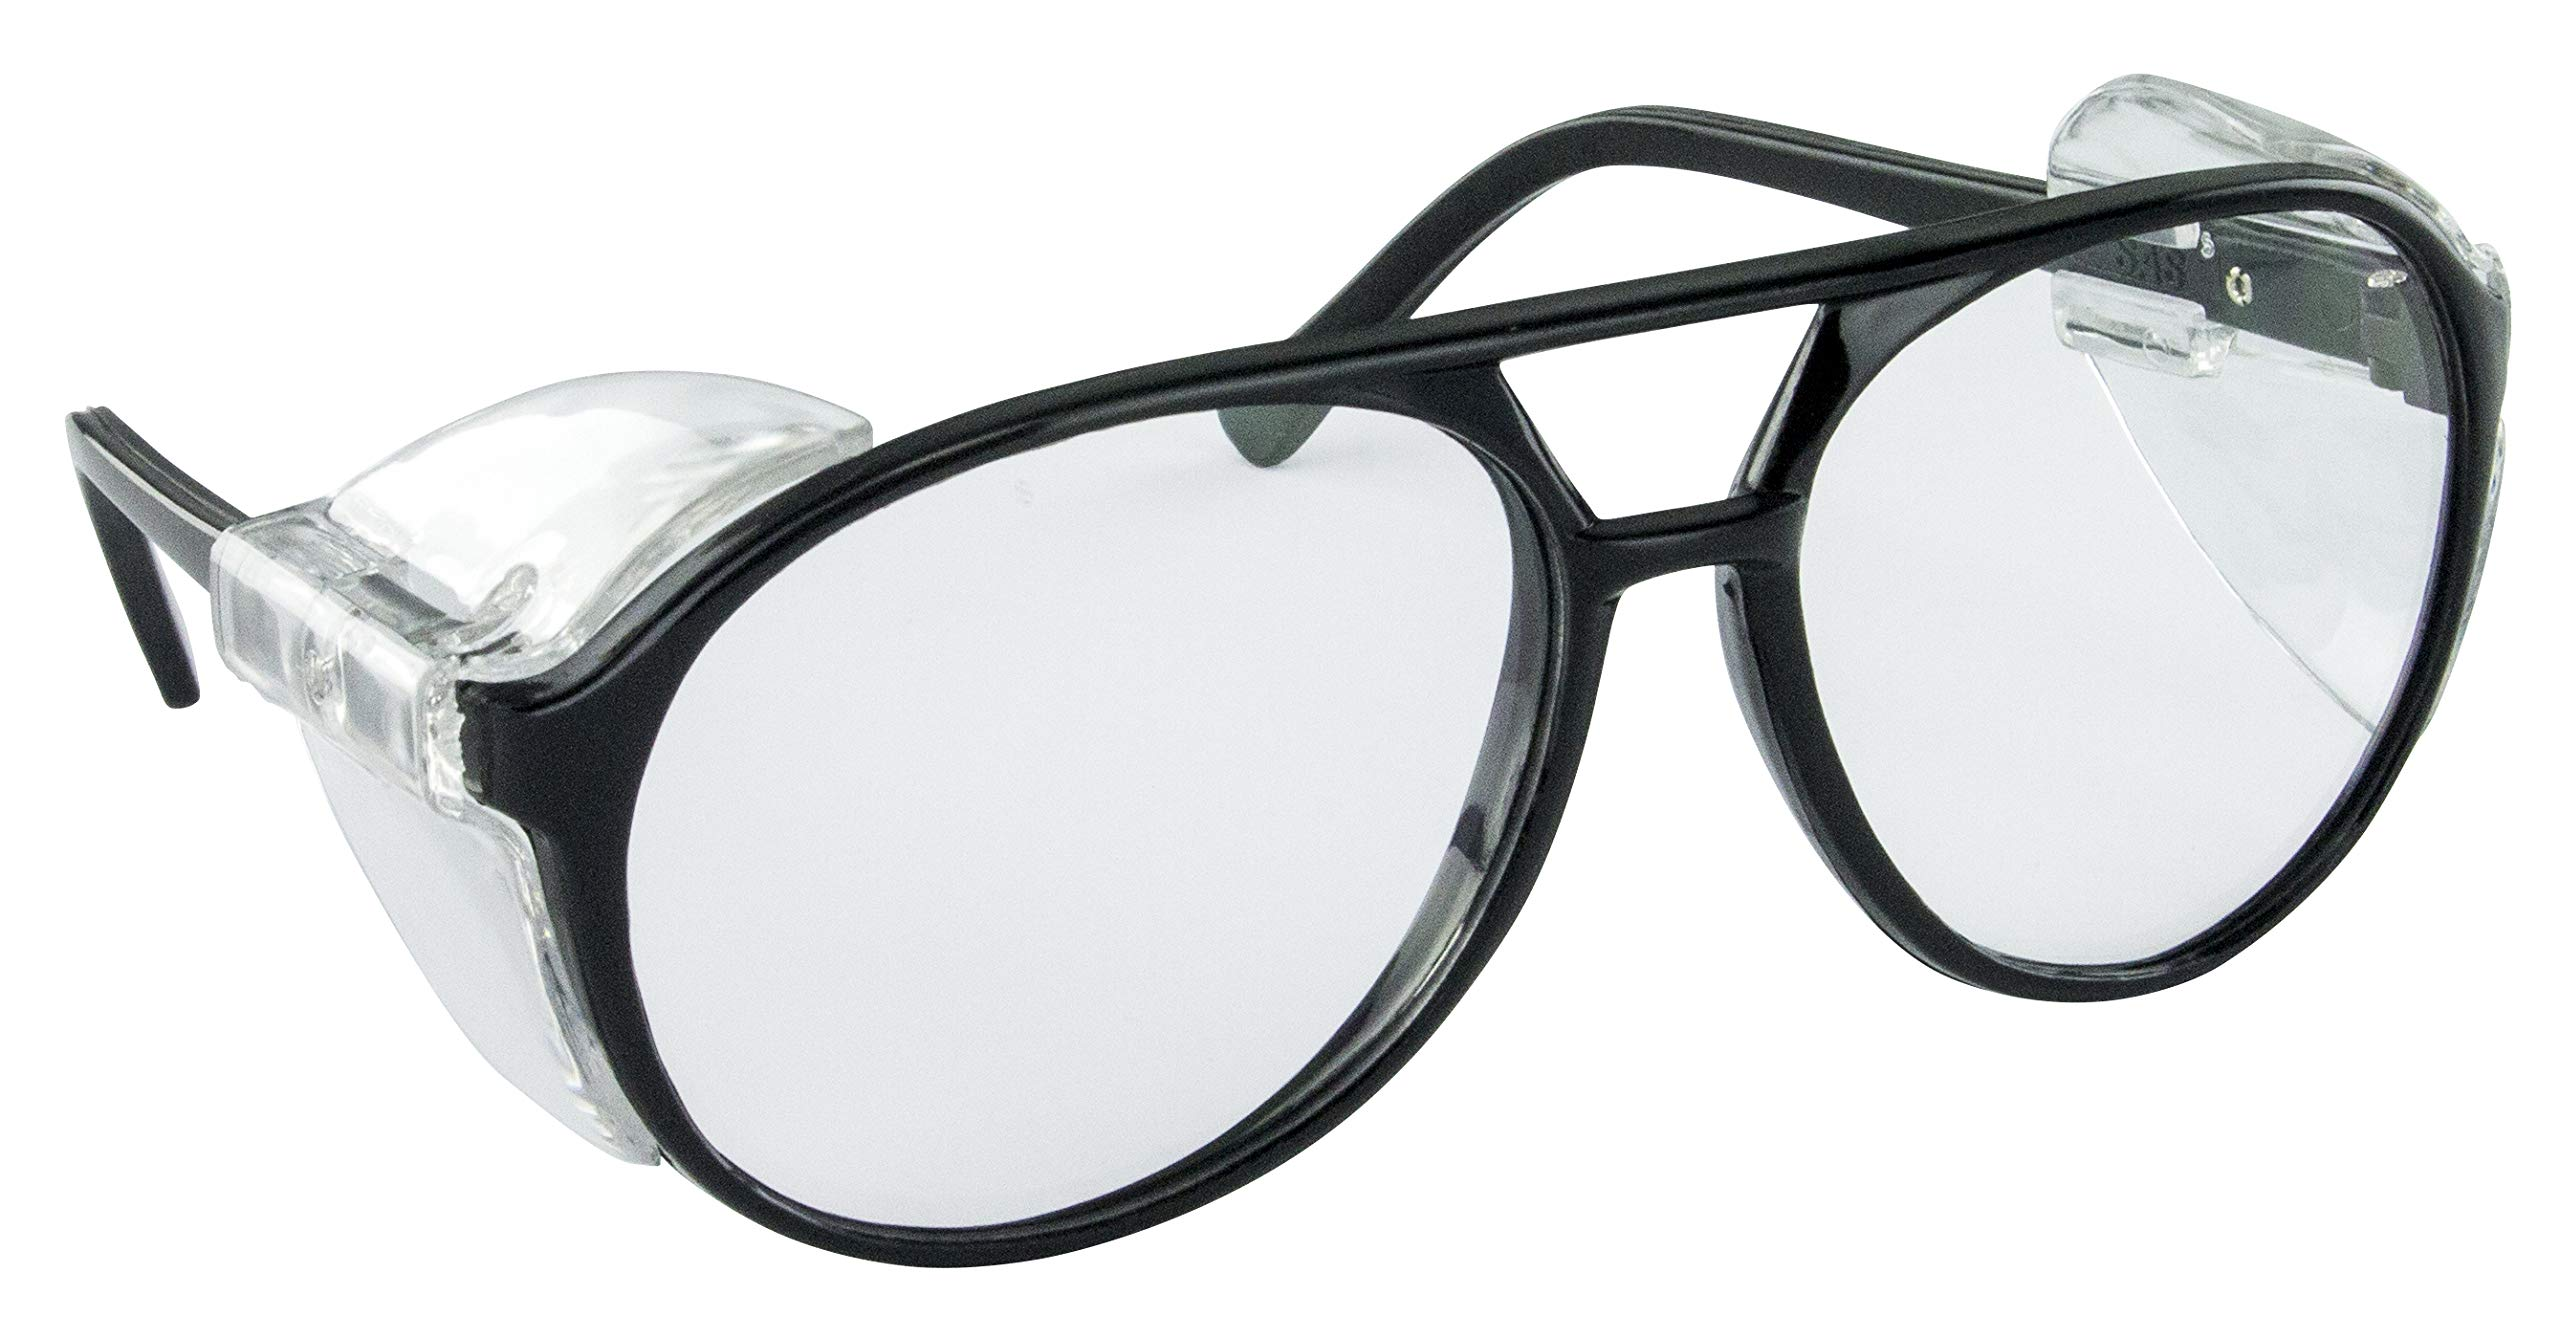 SAS Safety 5125 Classic Safety Glasses with Polybag, Black Frame/Clear Lens